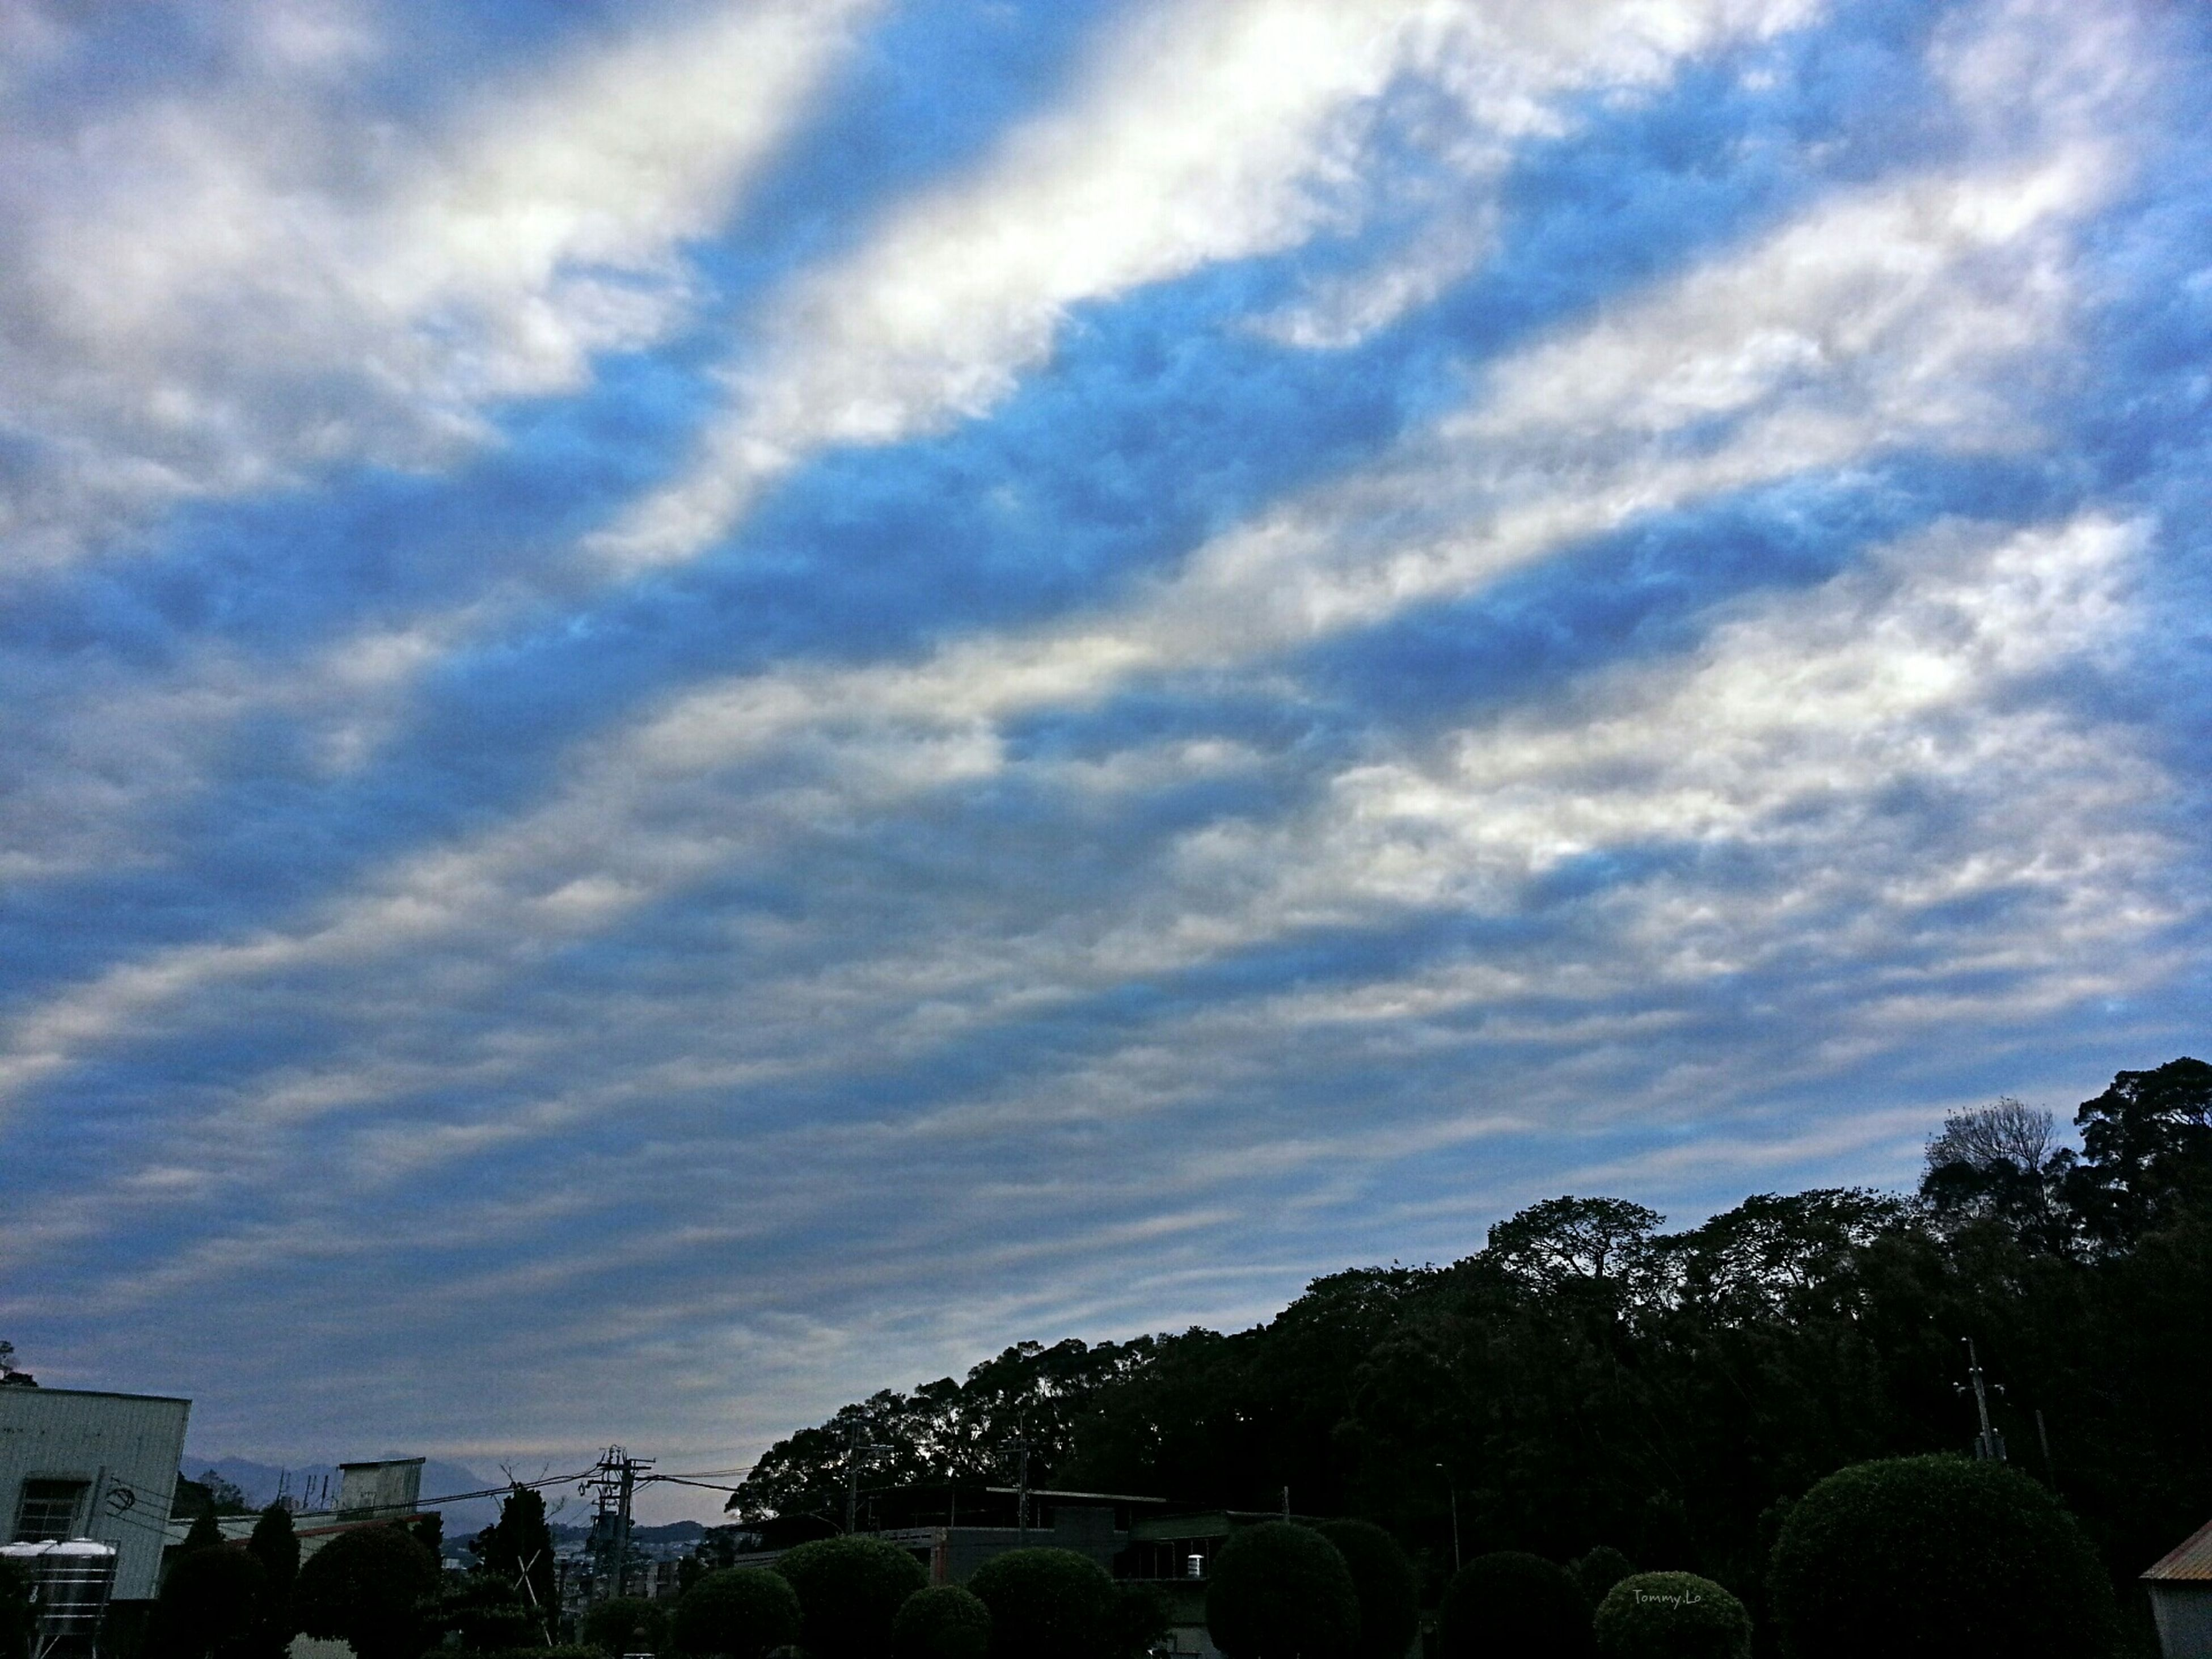 sky, cloud - sky, tree, cloudy, cloud, low angle view, nature, beauty in nature, outdoors, built structure, day, growth, tranquility, scenics, silhouette, blue, tranquil scene, architecture, no people, weather